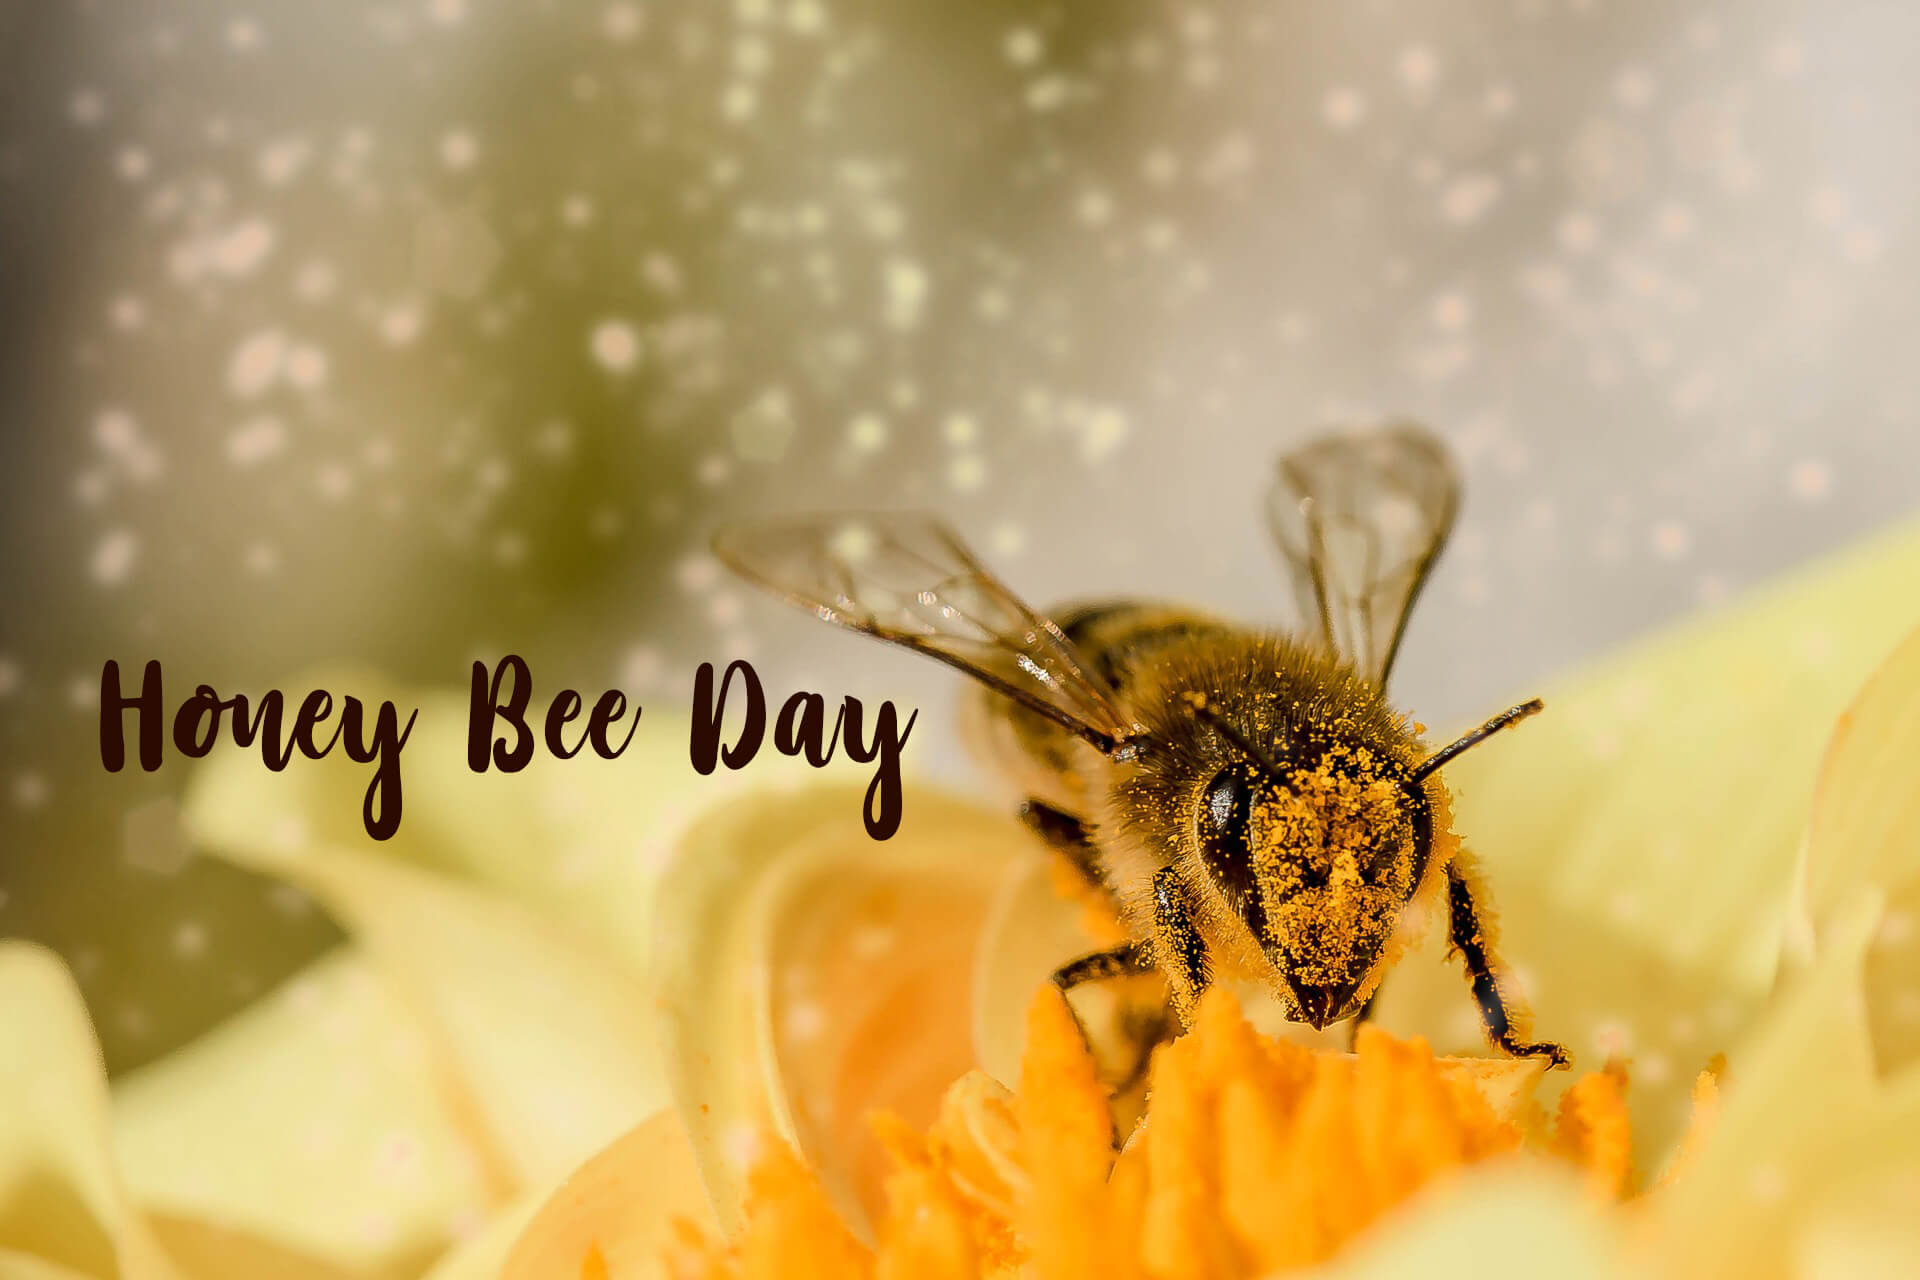 happy honey bee day image pc hd wallpaper